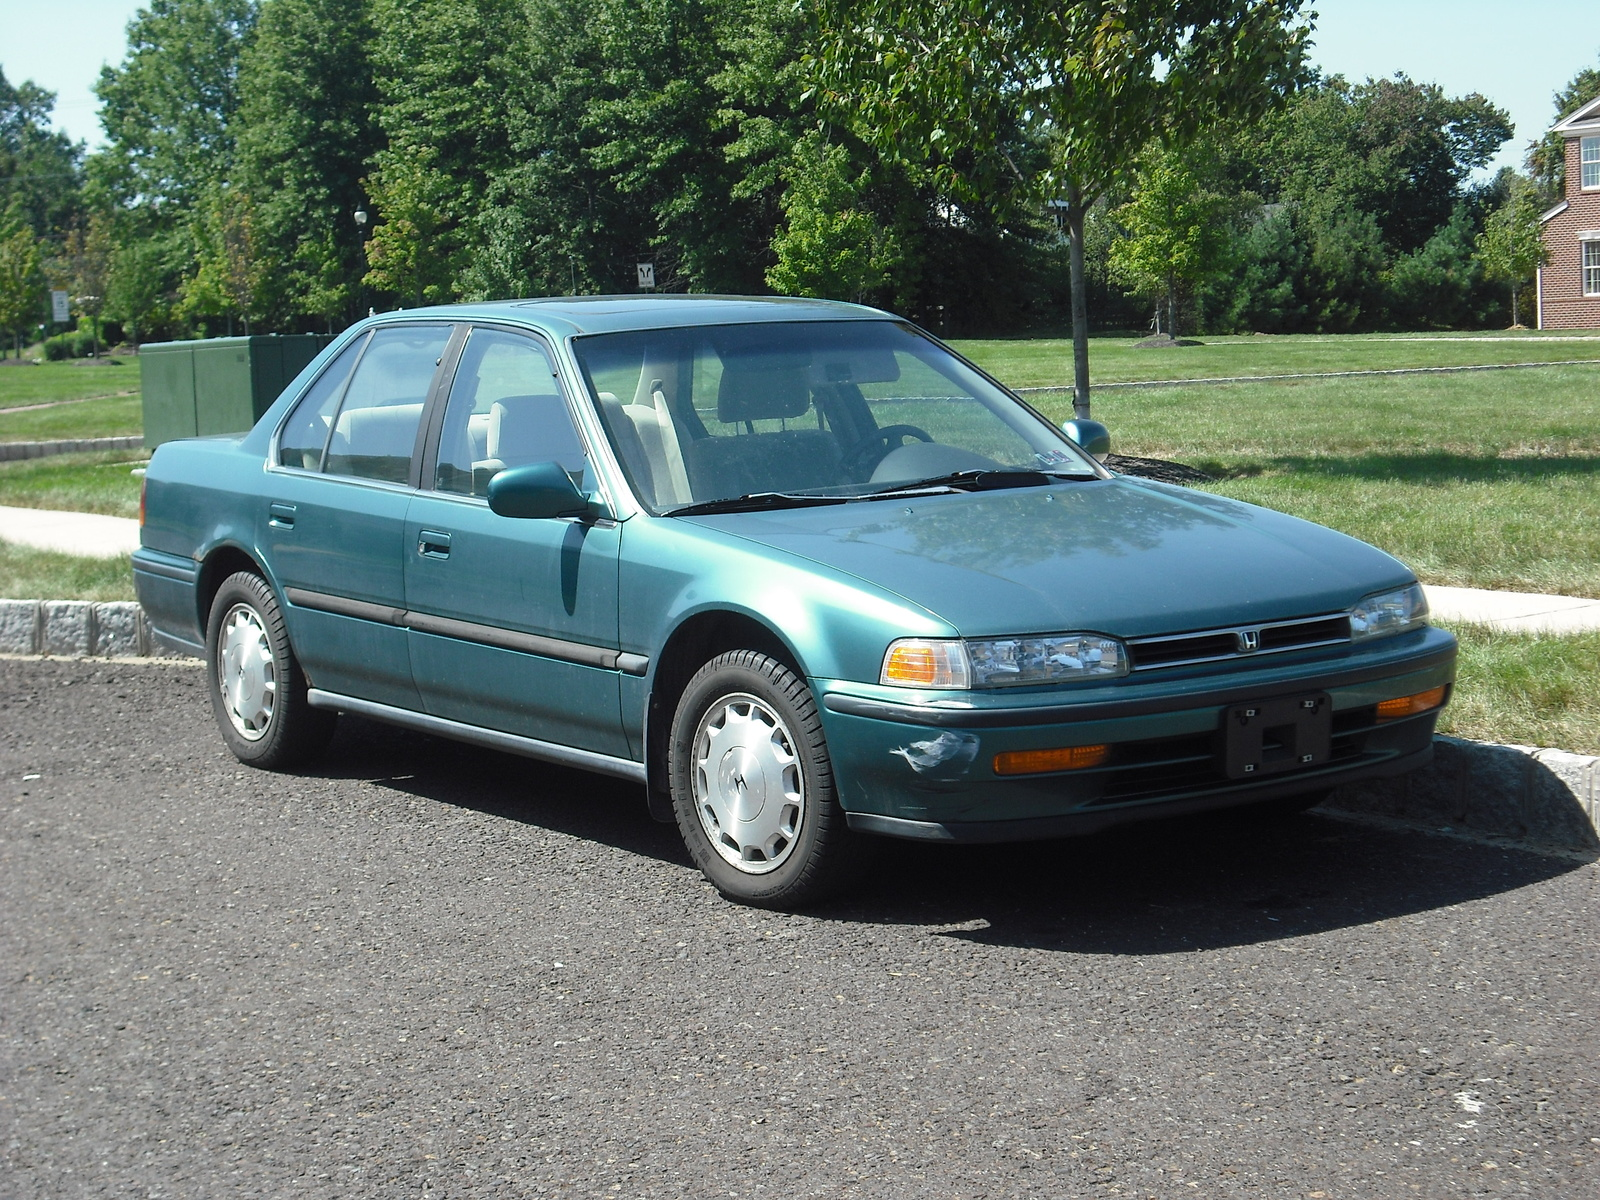 Picture of 1993 Honda Accord EX, exterior